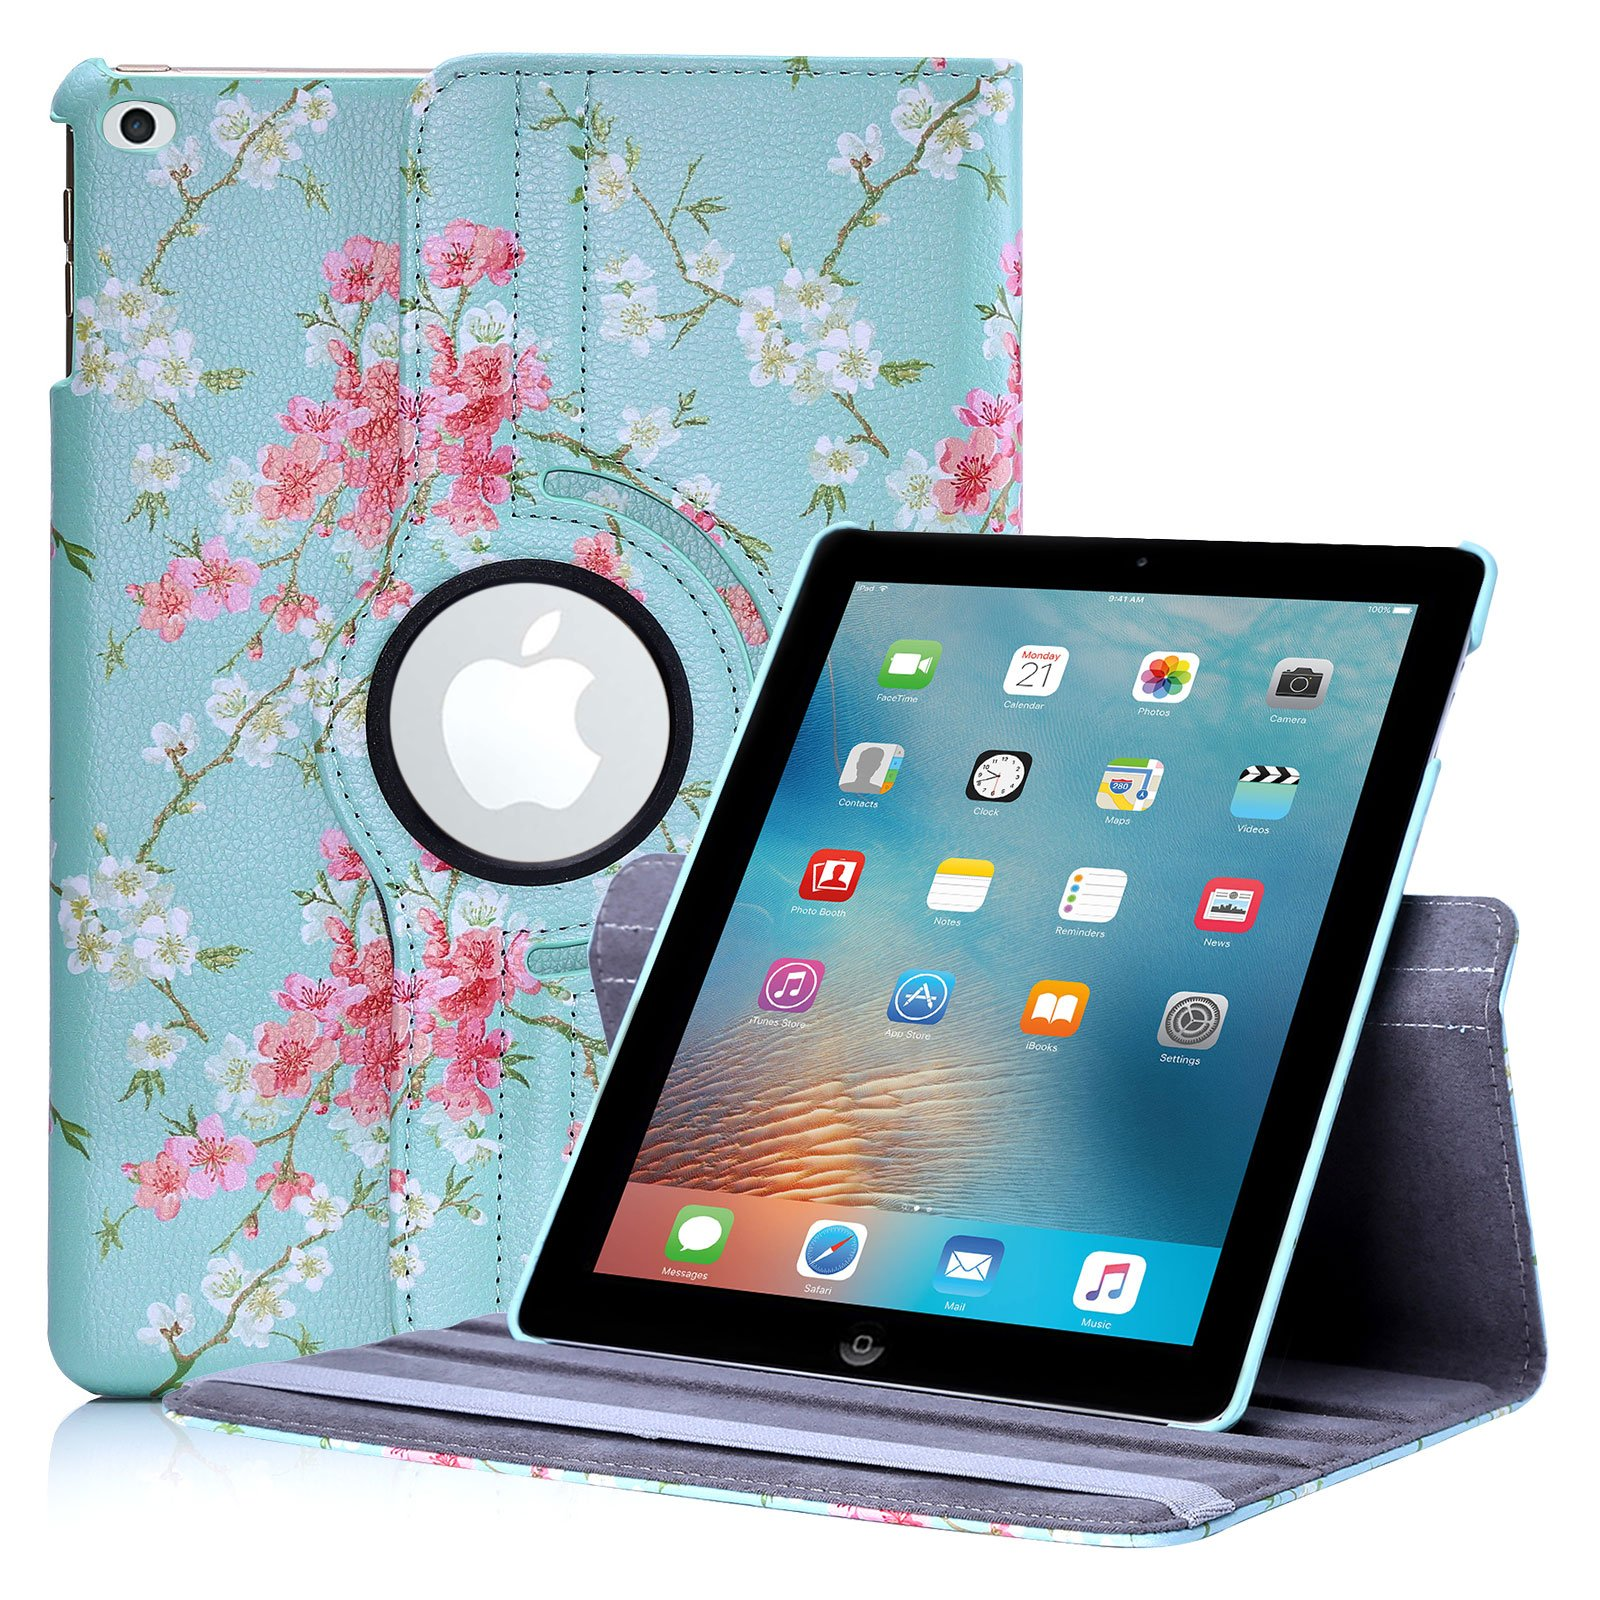 iPad 9.7 Inch (2017) Floral Design Case by 32nd, Faux Leather Folio Style Stand Cover Suitable for Apple iPad 9.7 inch (released March 2017) - Spring Blue by 32ndShop